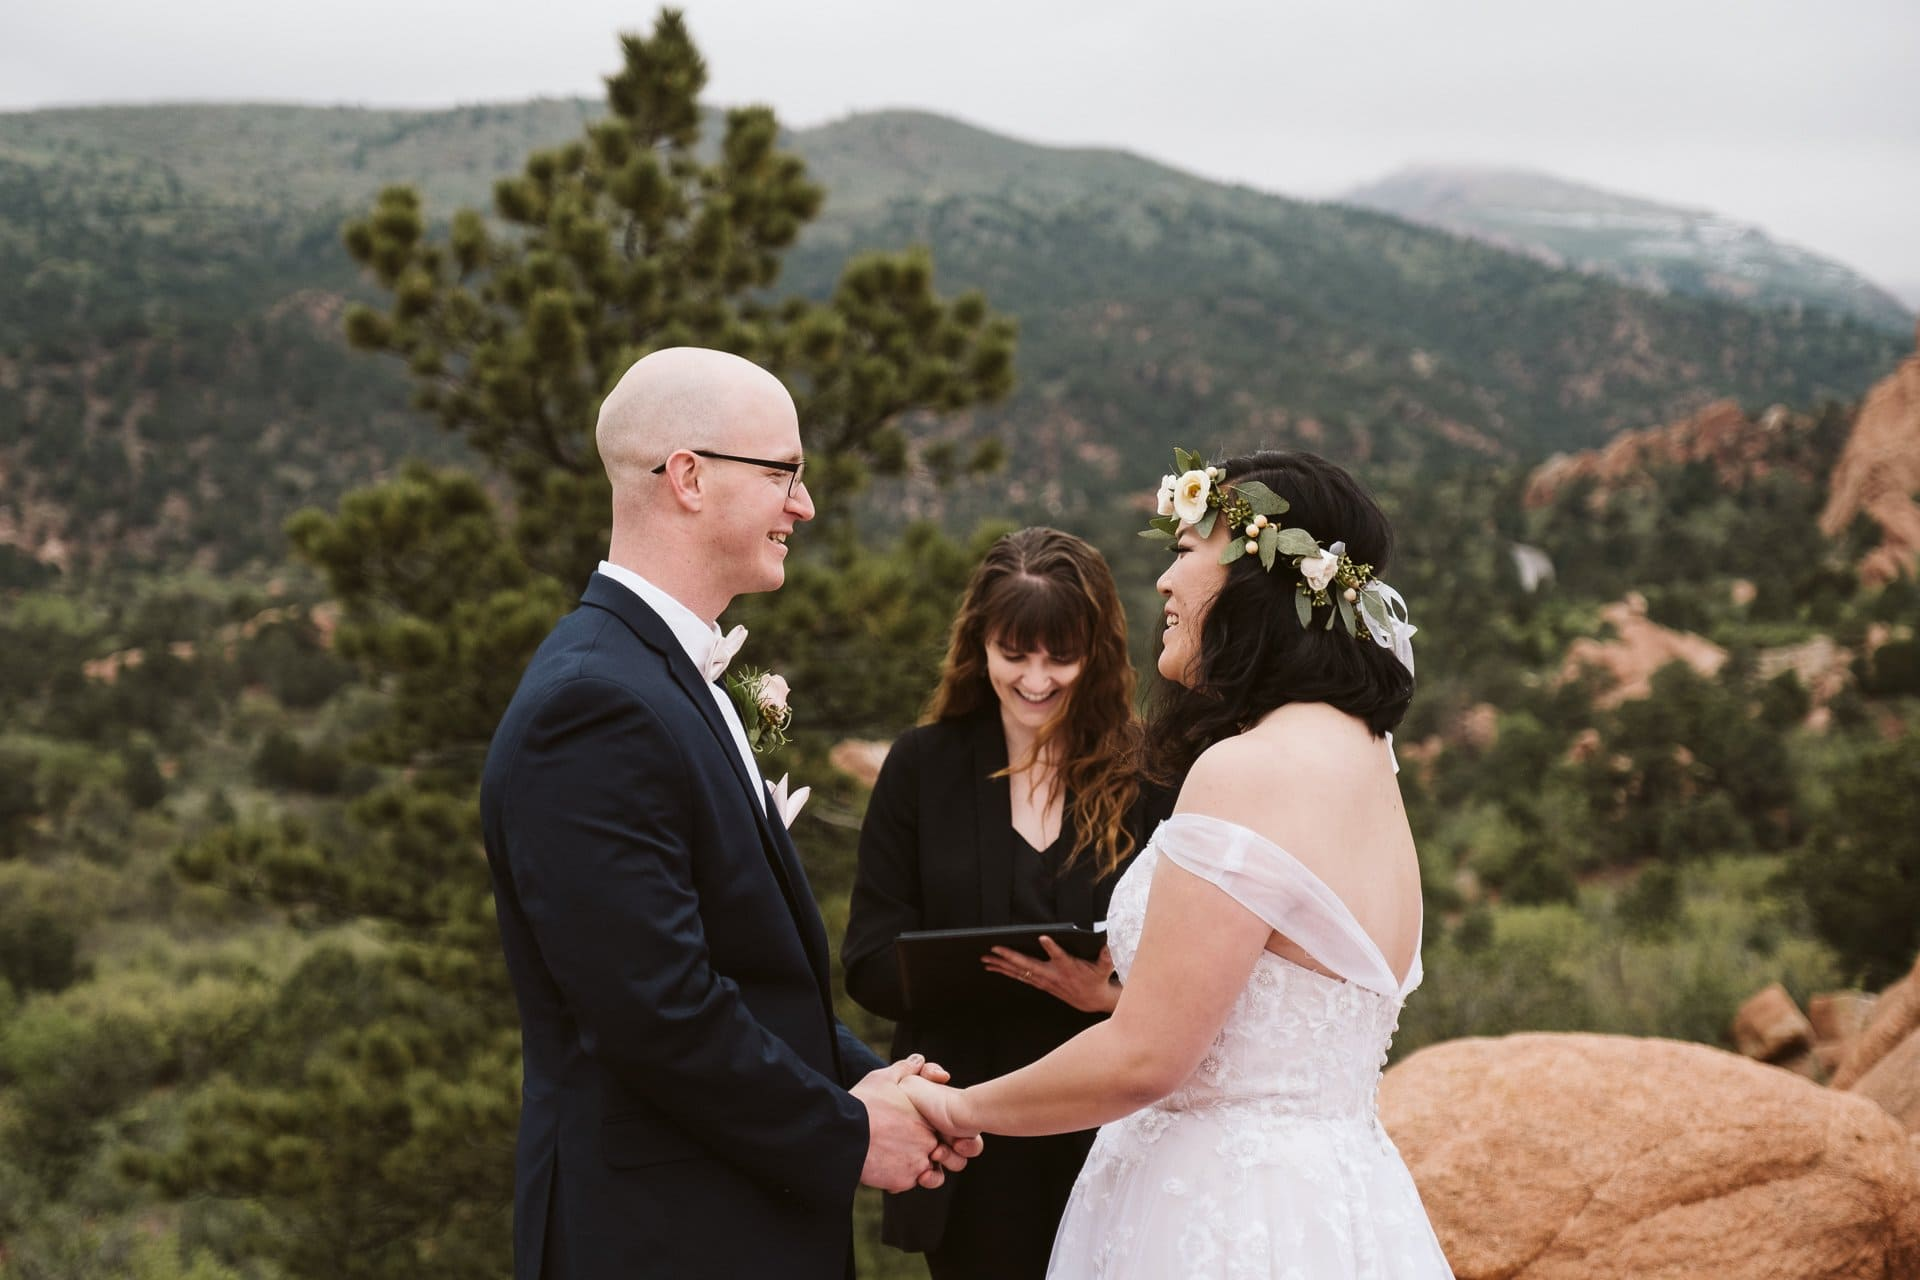 Elopement ceremony at Garden of the Gods in Colorado Springs